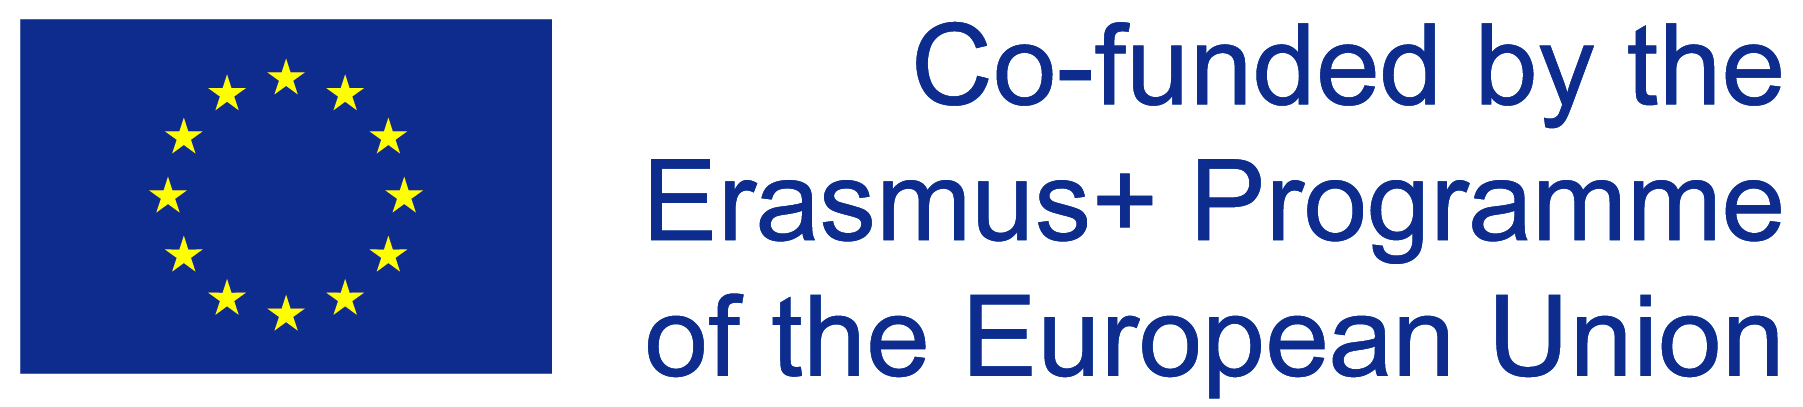 Erasmus plus eu flag